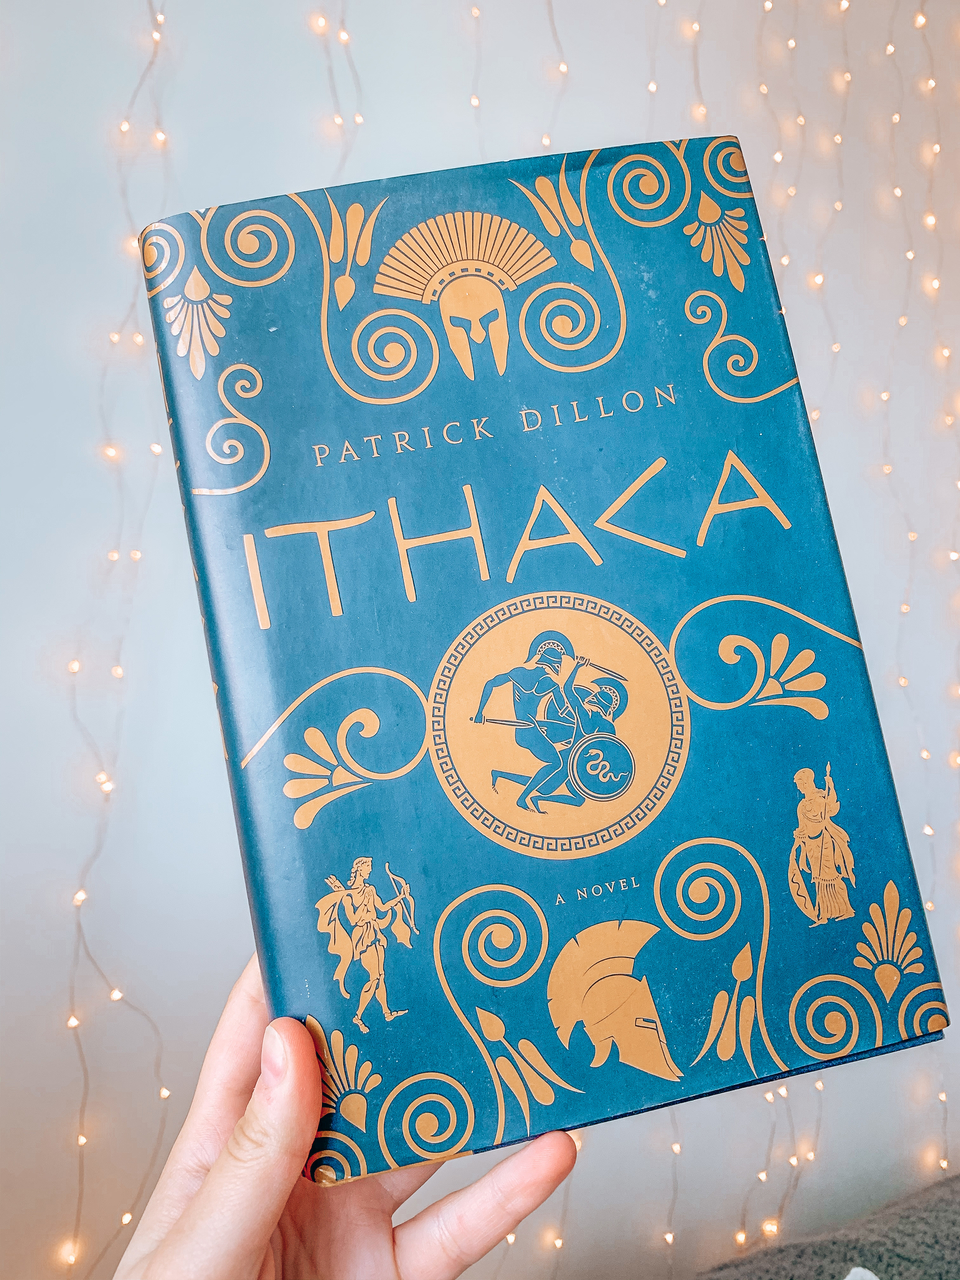 Ithaca by Patrick Dillon Greek myth patterned book cover